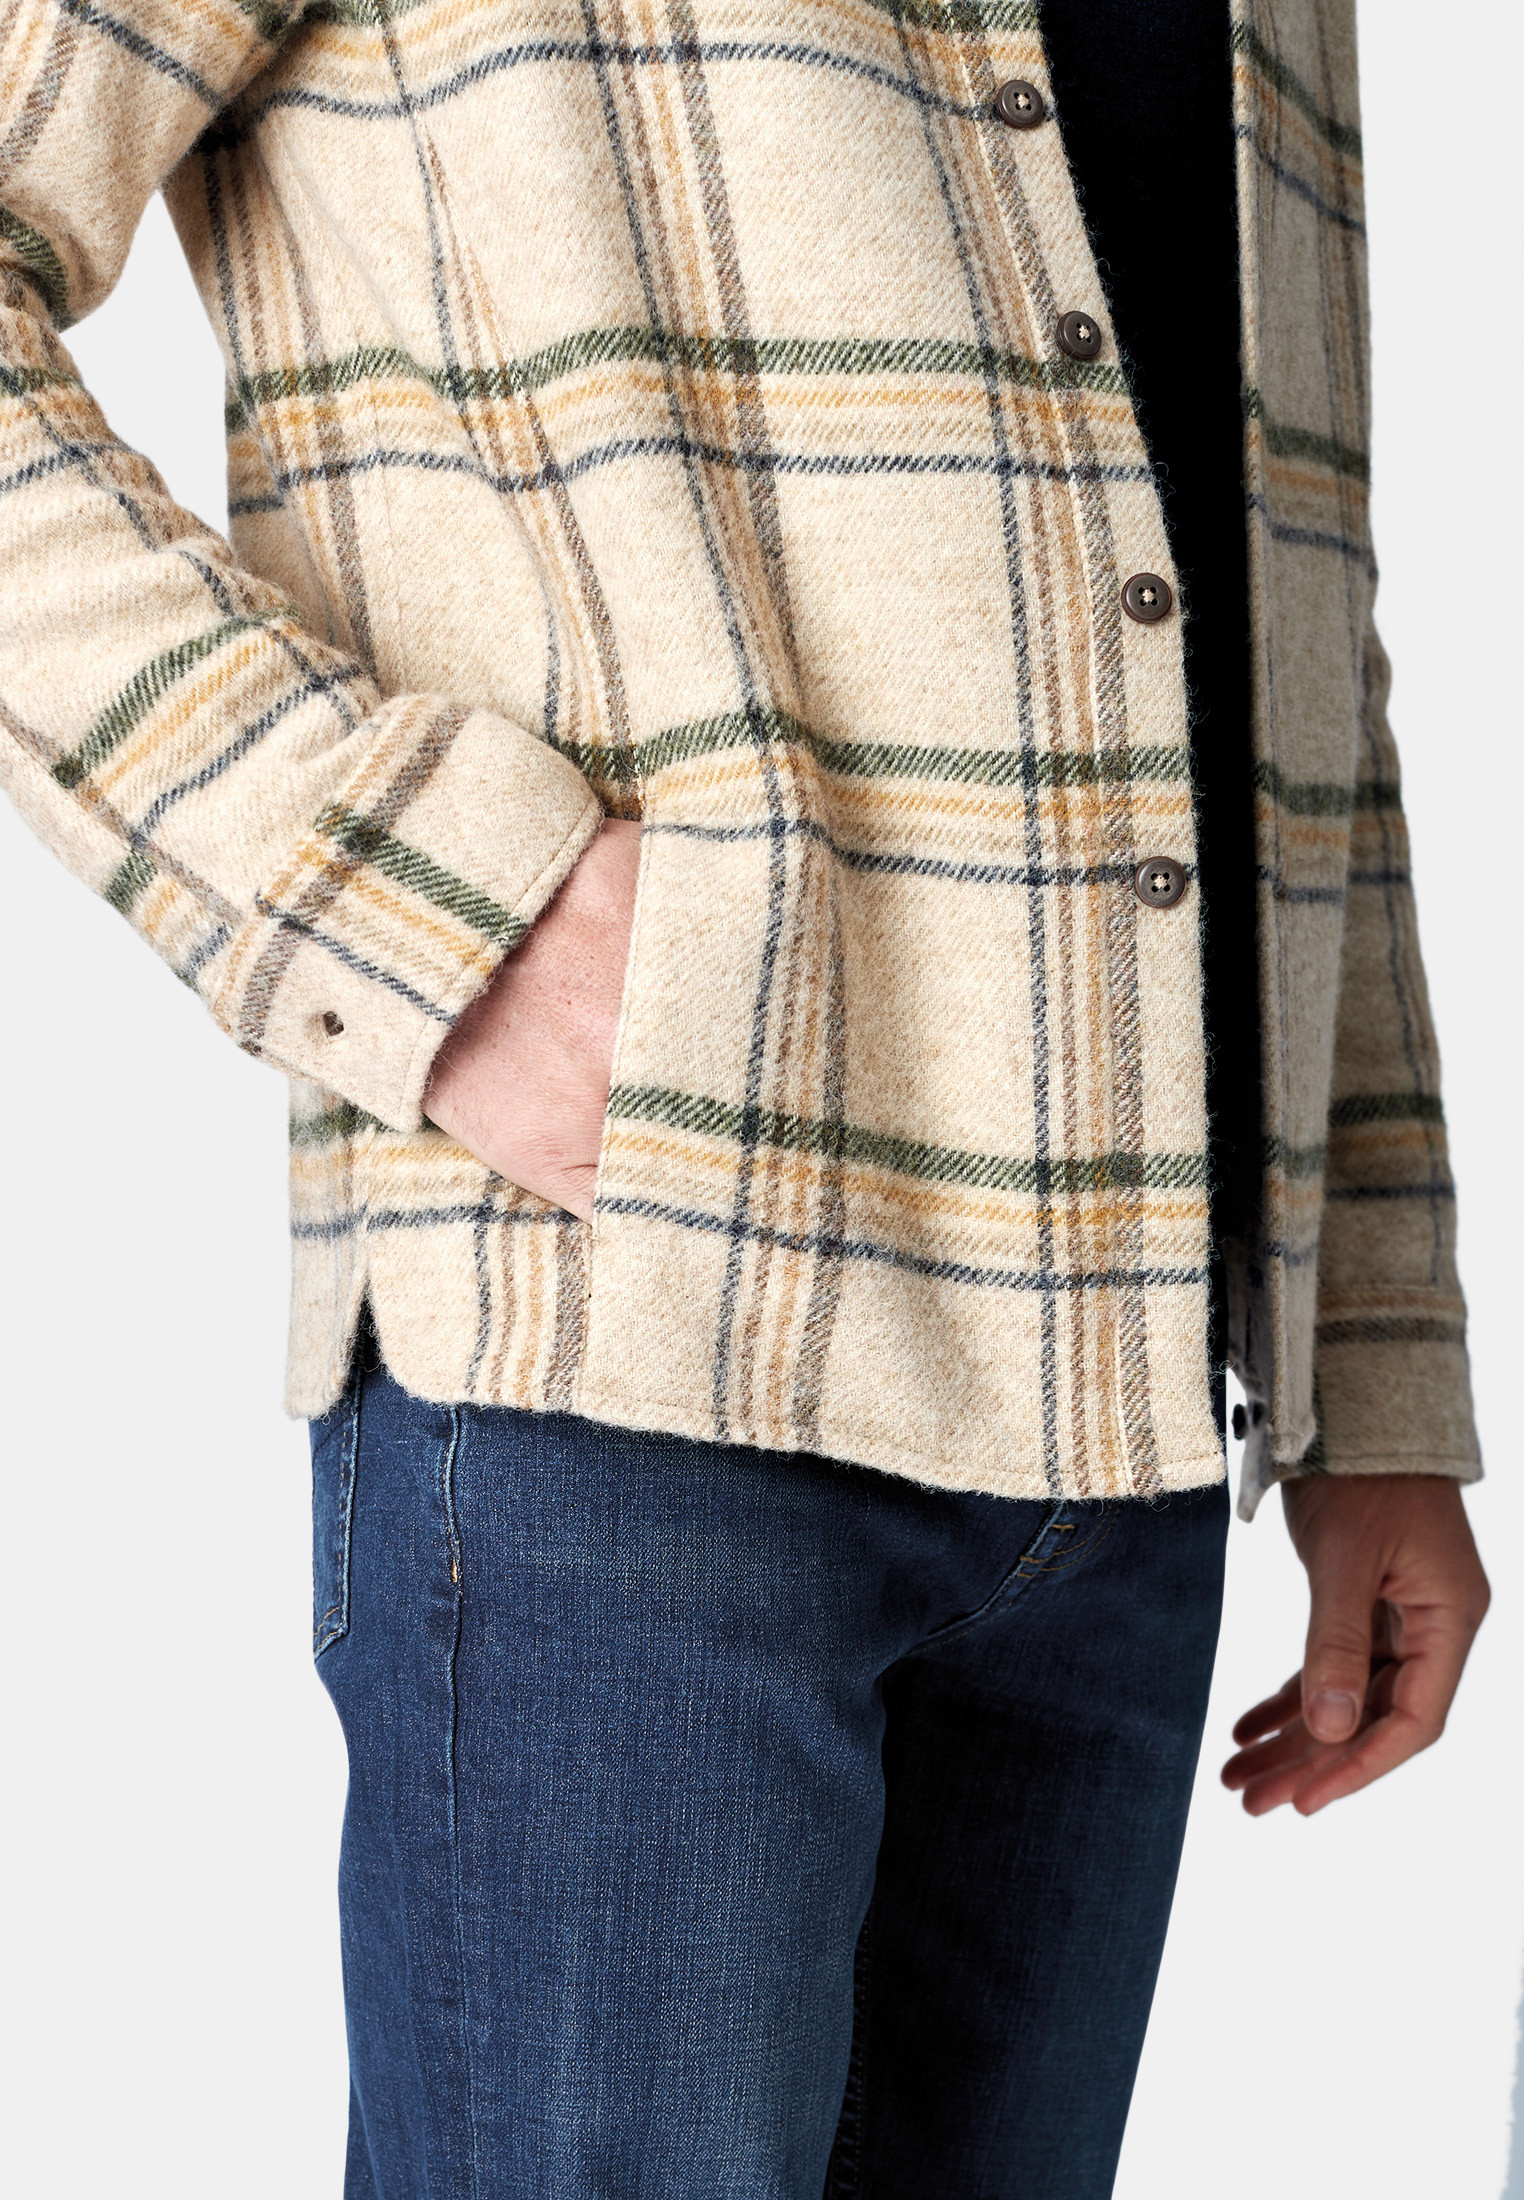 Greenland Winter White with Blue Forest and Gold Check Pure New Wool Heavy Weight Blanket Overshirt